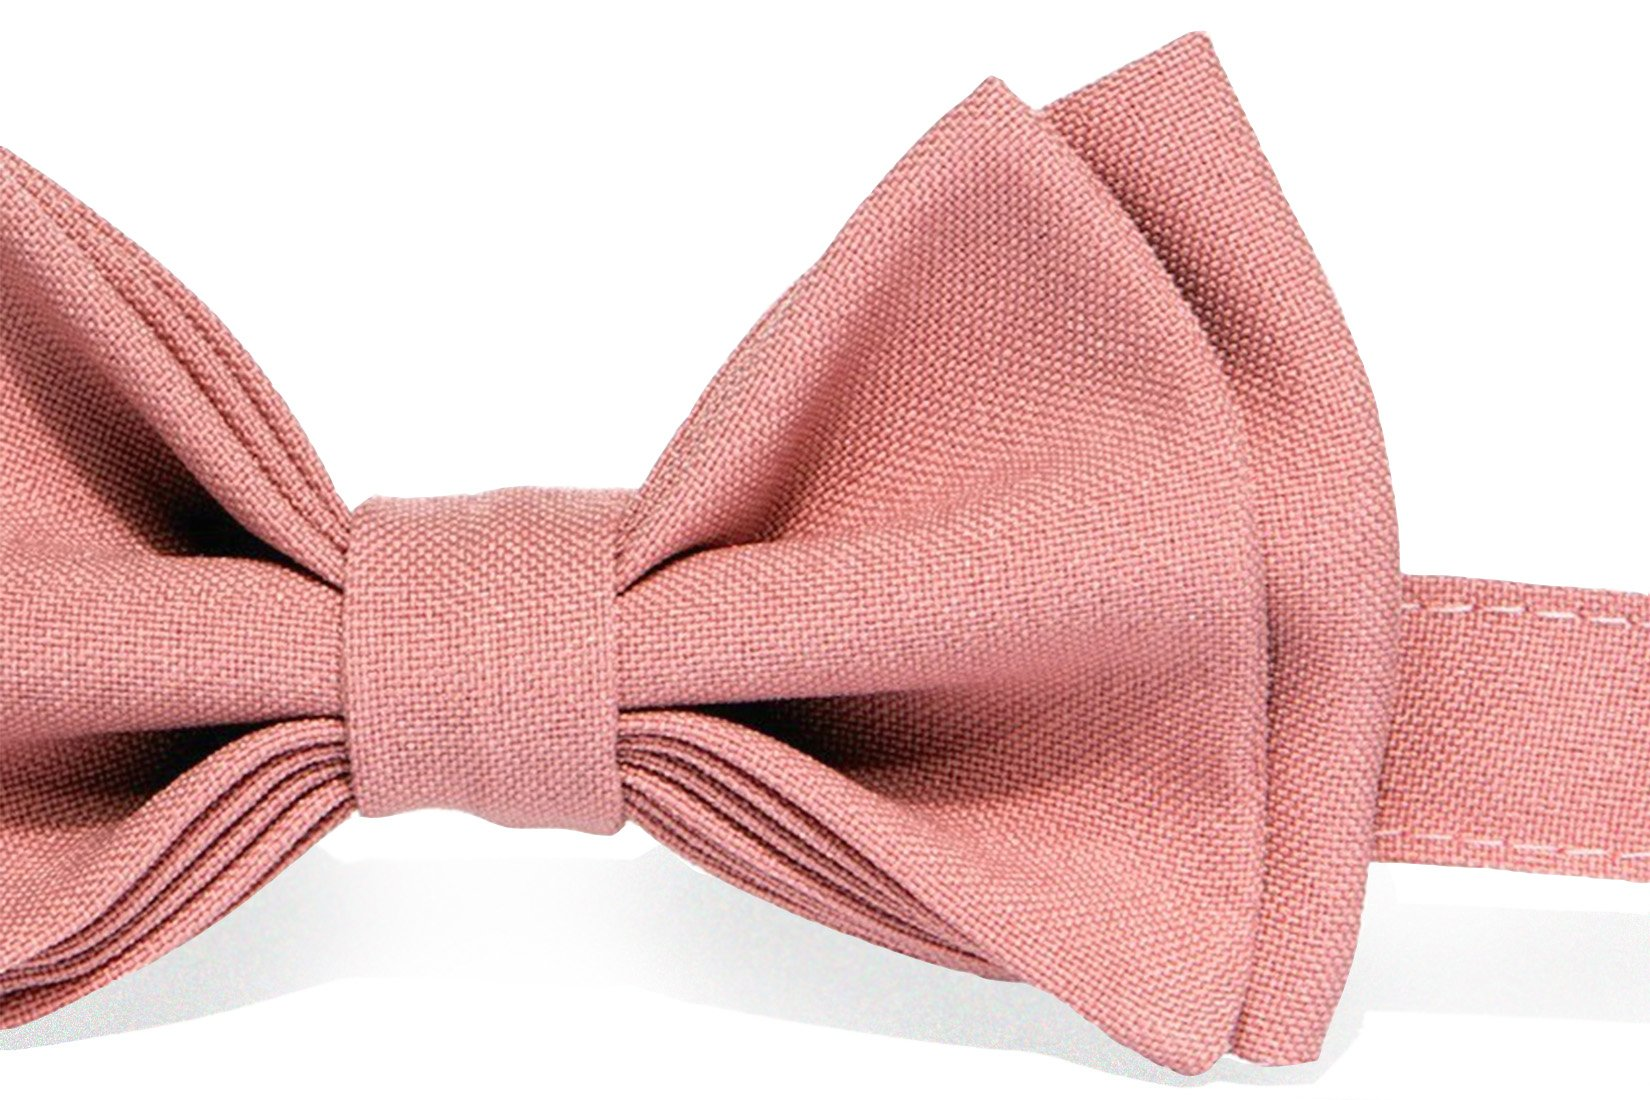 Baby Toddler Boy Men's Bow Tie Pre-tied - Made in USA (Boy (18 mo - 12 yrs), Dusty Rose)